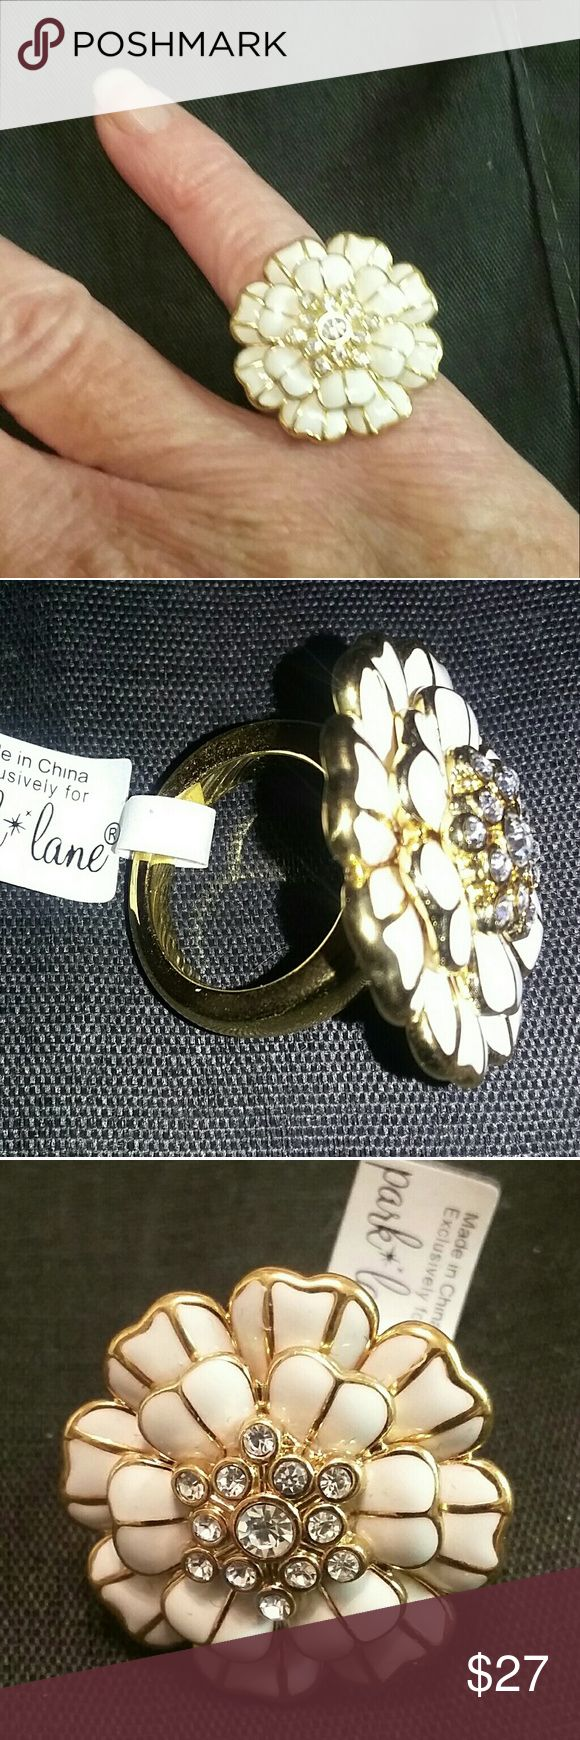 Park Lane 'Aubrey' Ring Austrian crystal-embellished white and gold enameled flower. Park Lane Jewelry